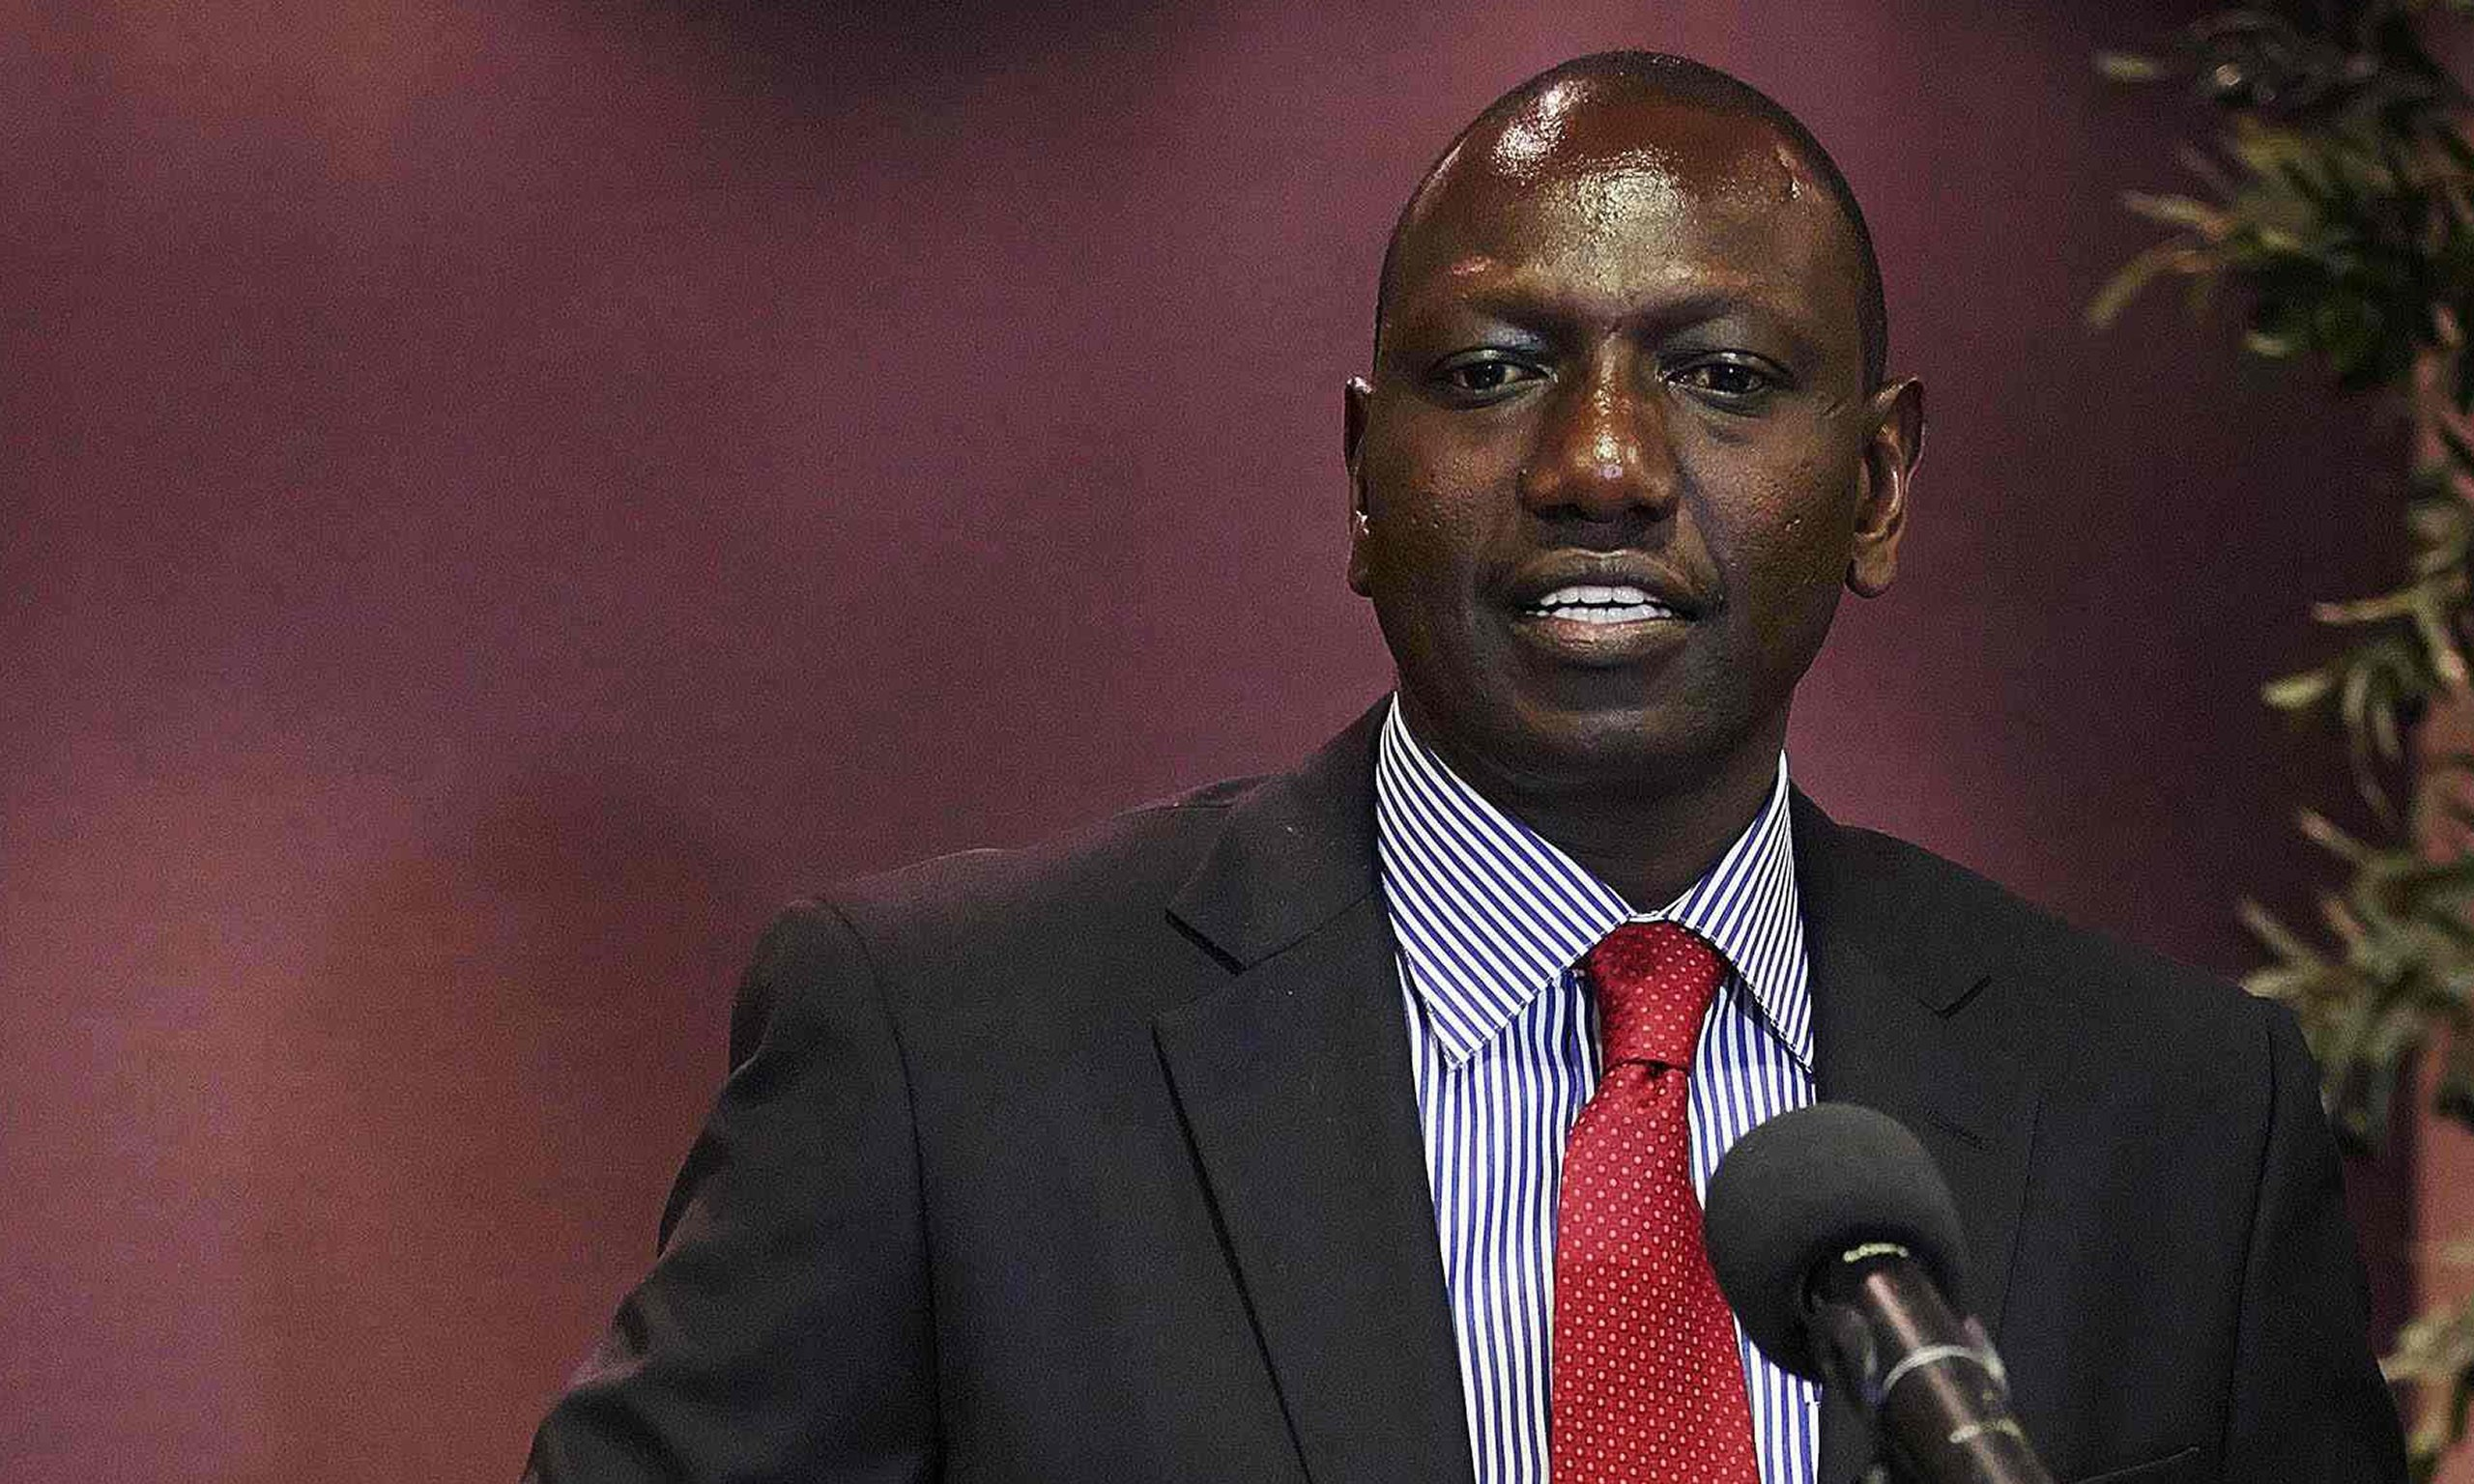 William Ruto in TROUBLE as POKOT Leaders DECAMP  URP for Raila's CORD